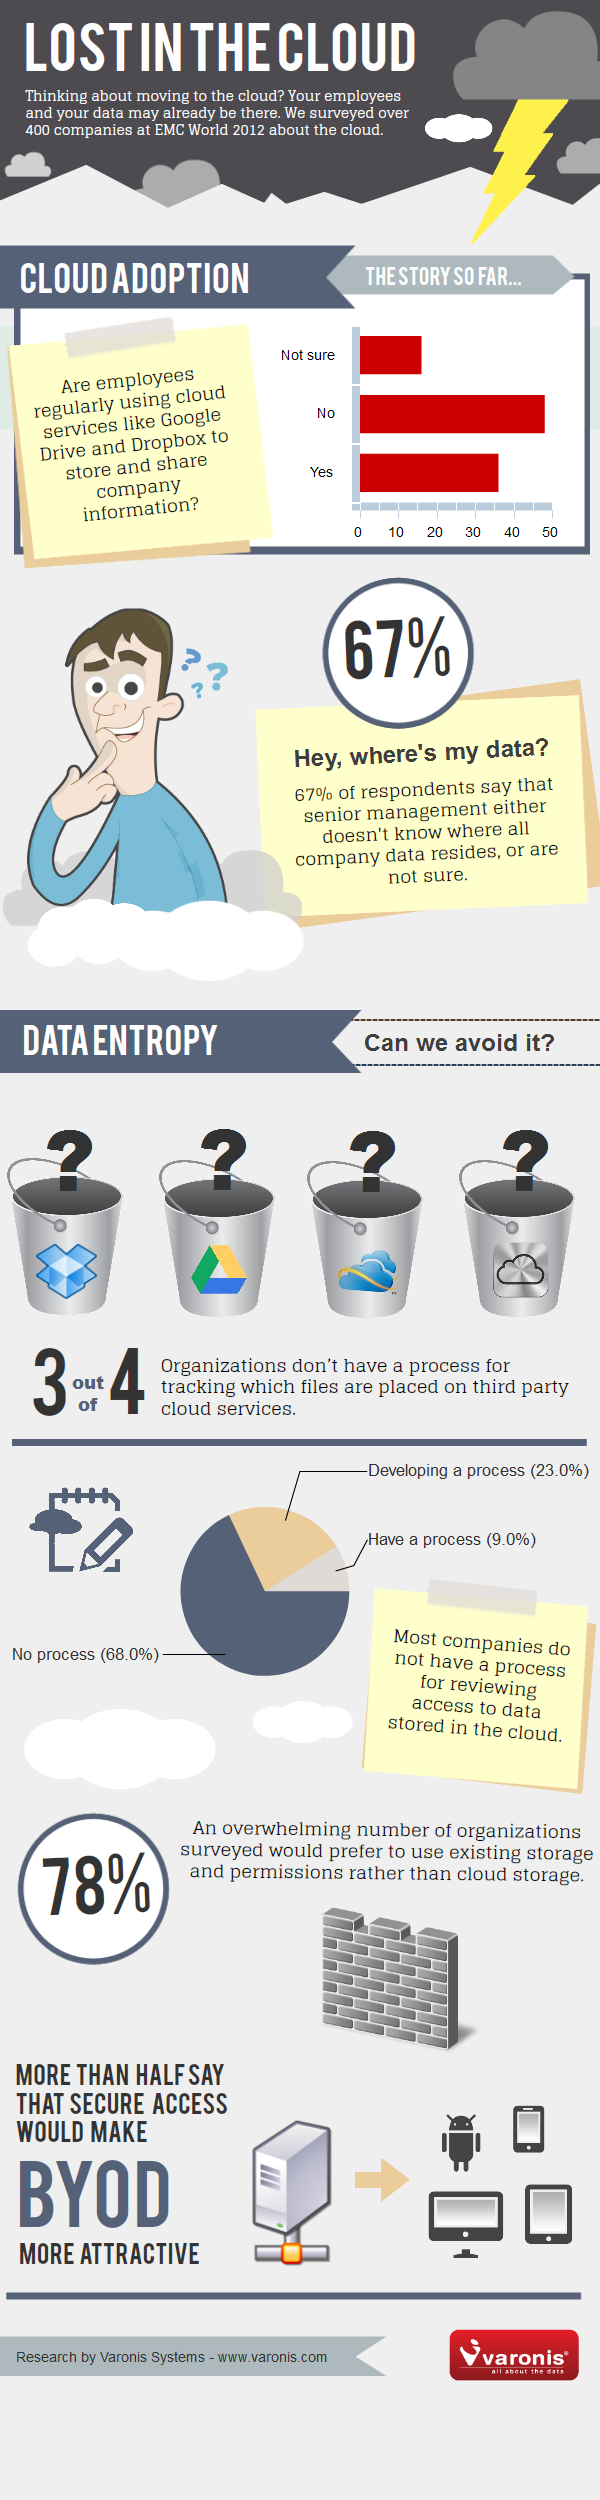 Lost_in_the_Cloud_Infographic